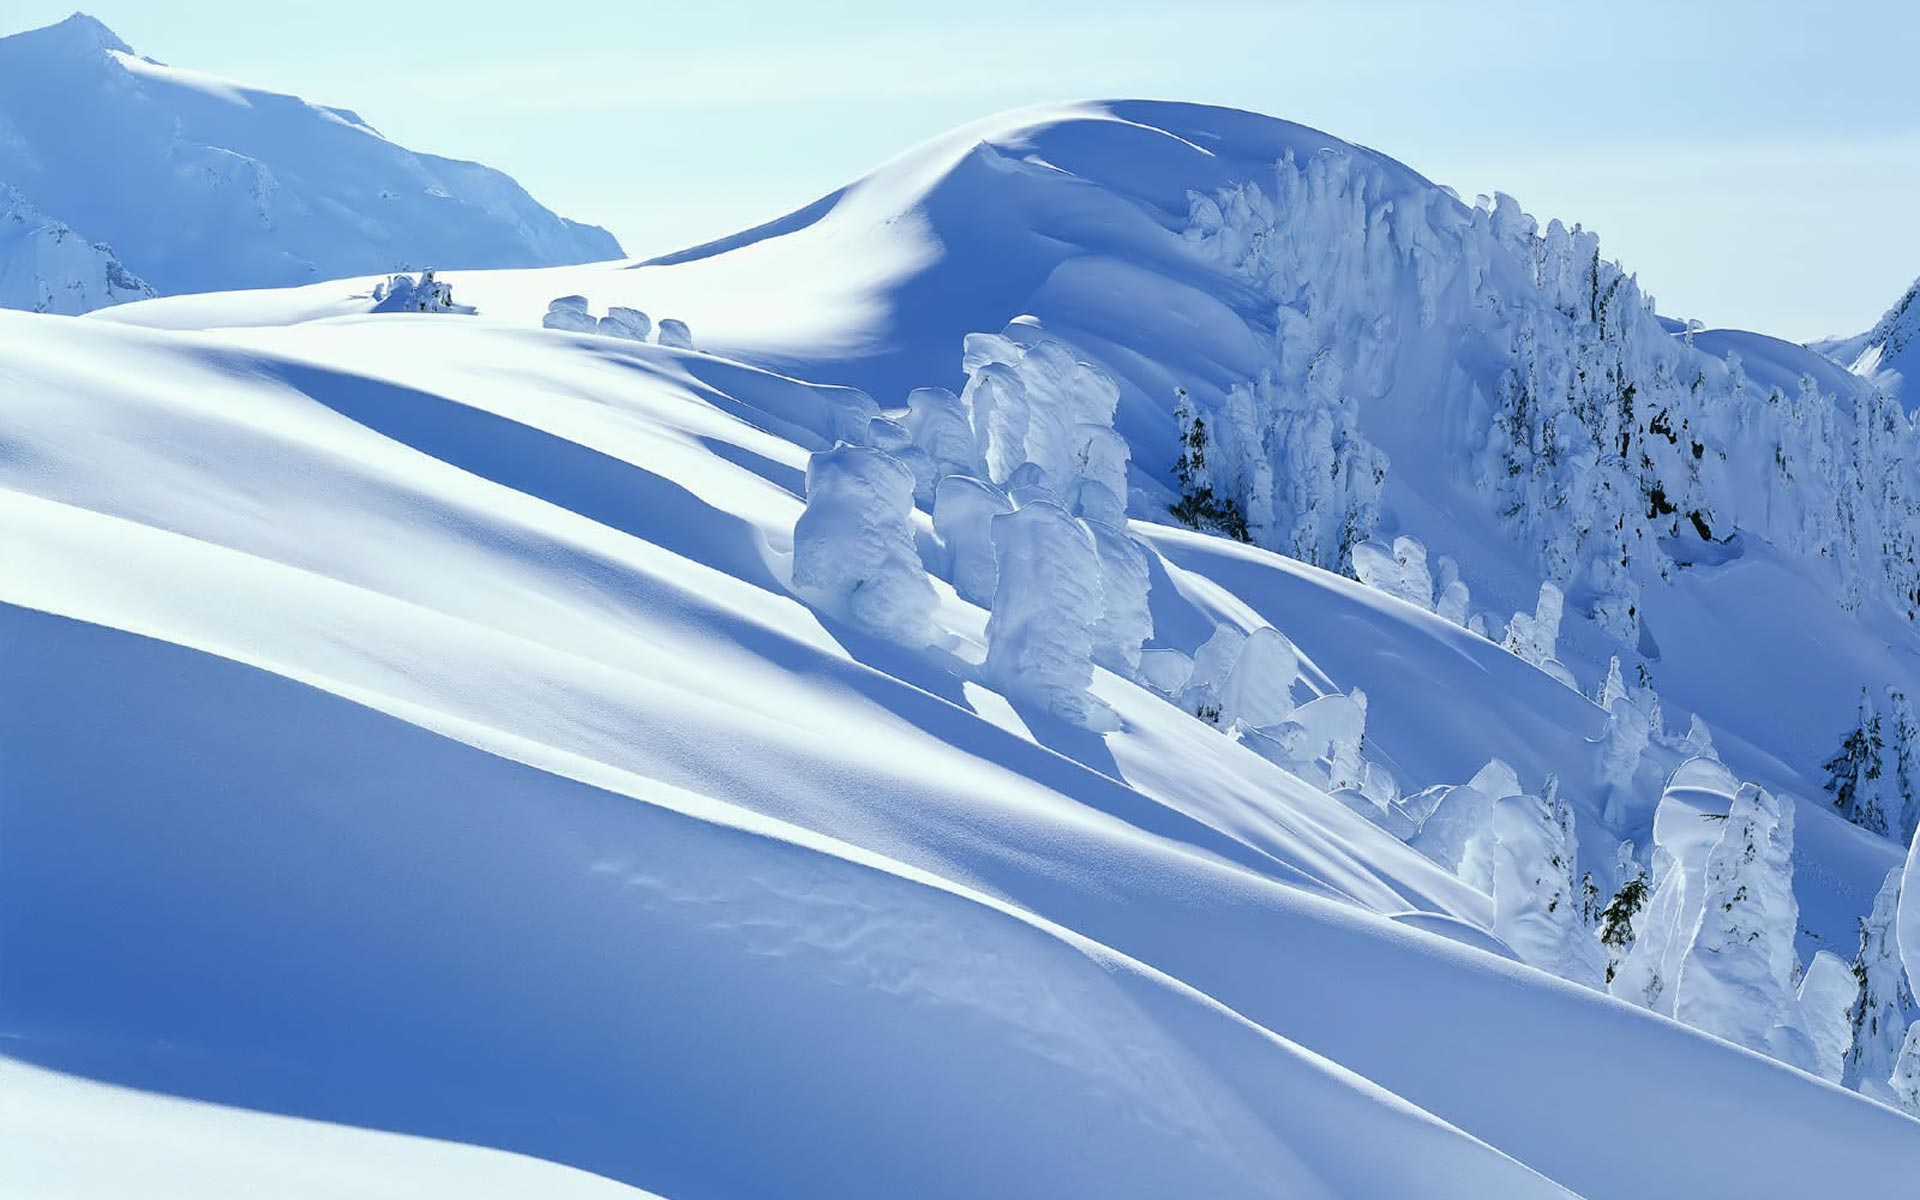 eb5d7768b169 Mountain snow wallpaper - SF Wallpaper